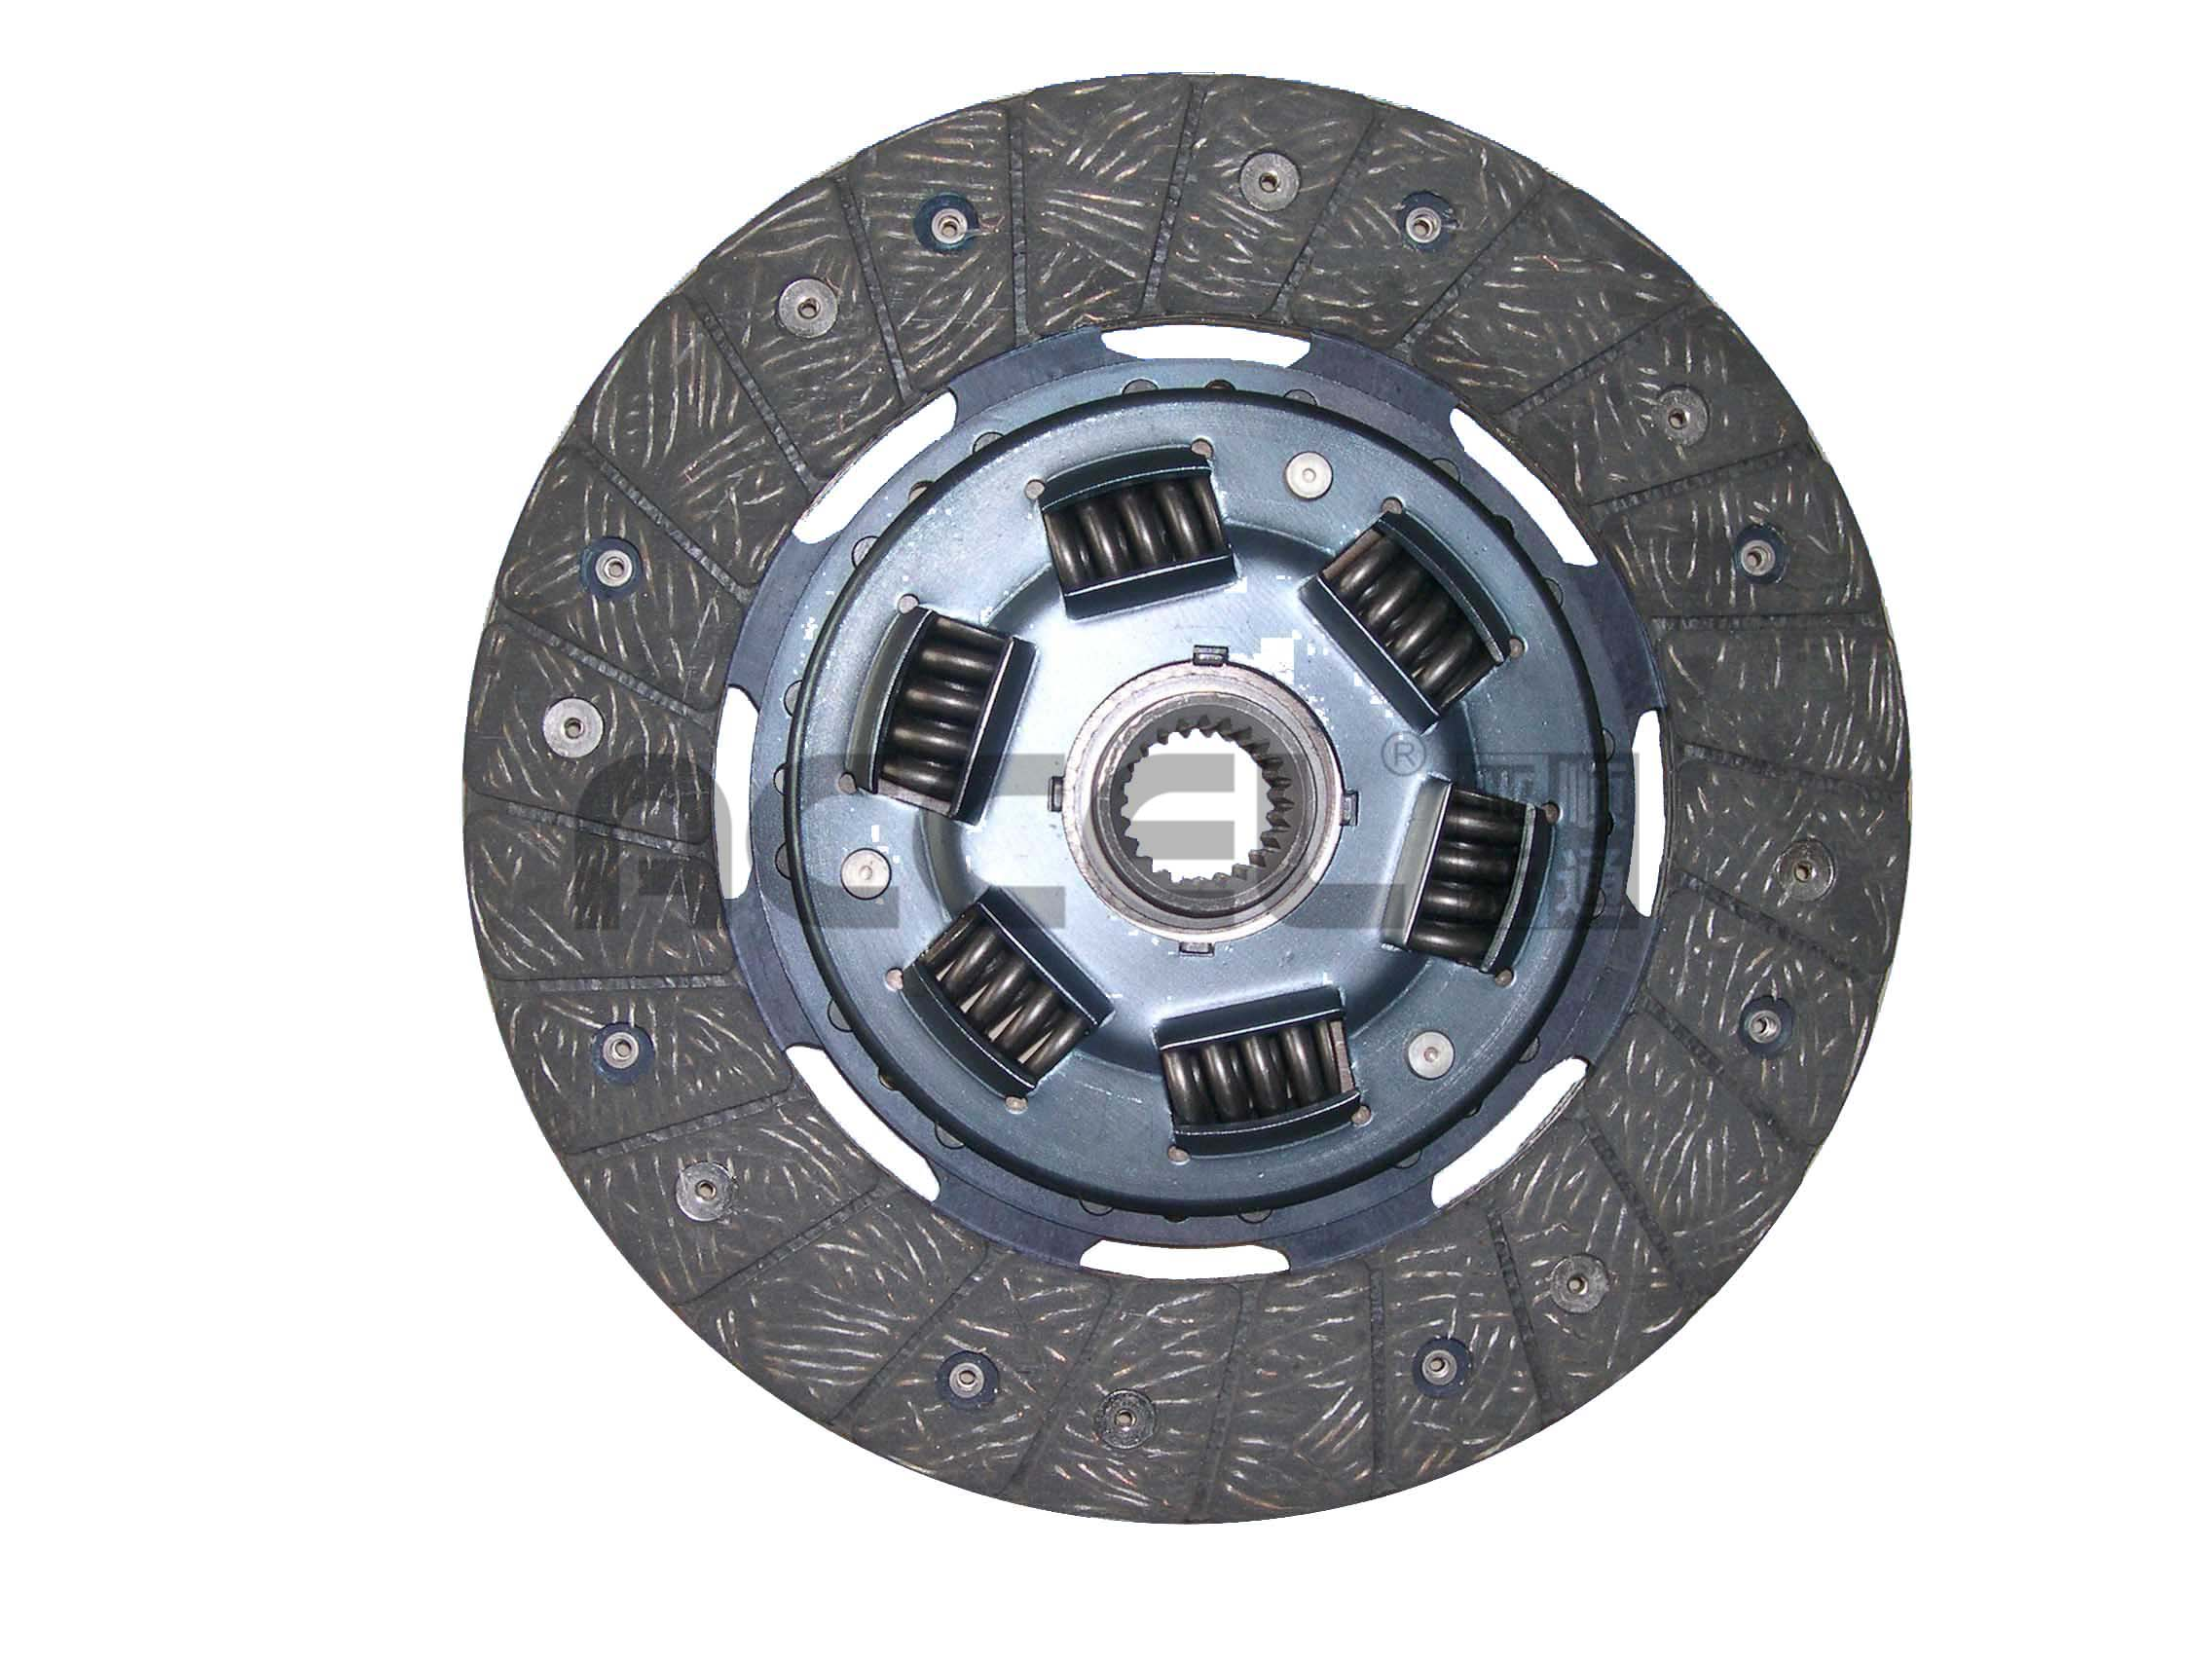 Clutch Disc/OE:NULL/228*150*23*26.2/ARC-008/RACING CAR/CL1320